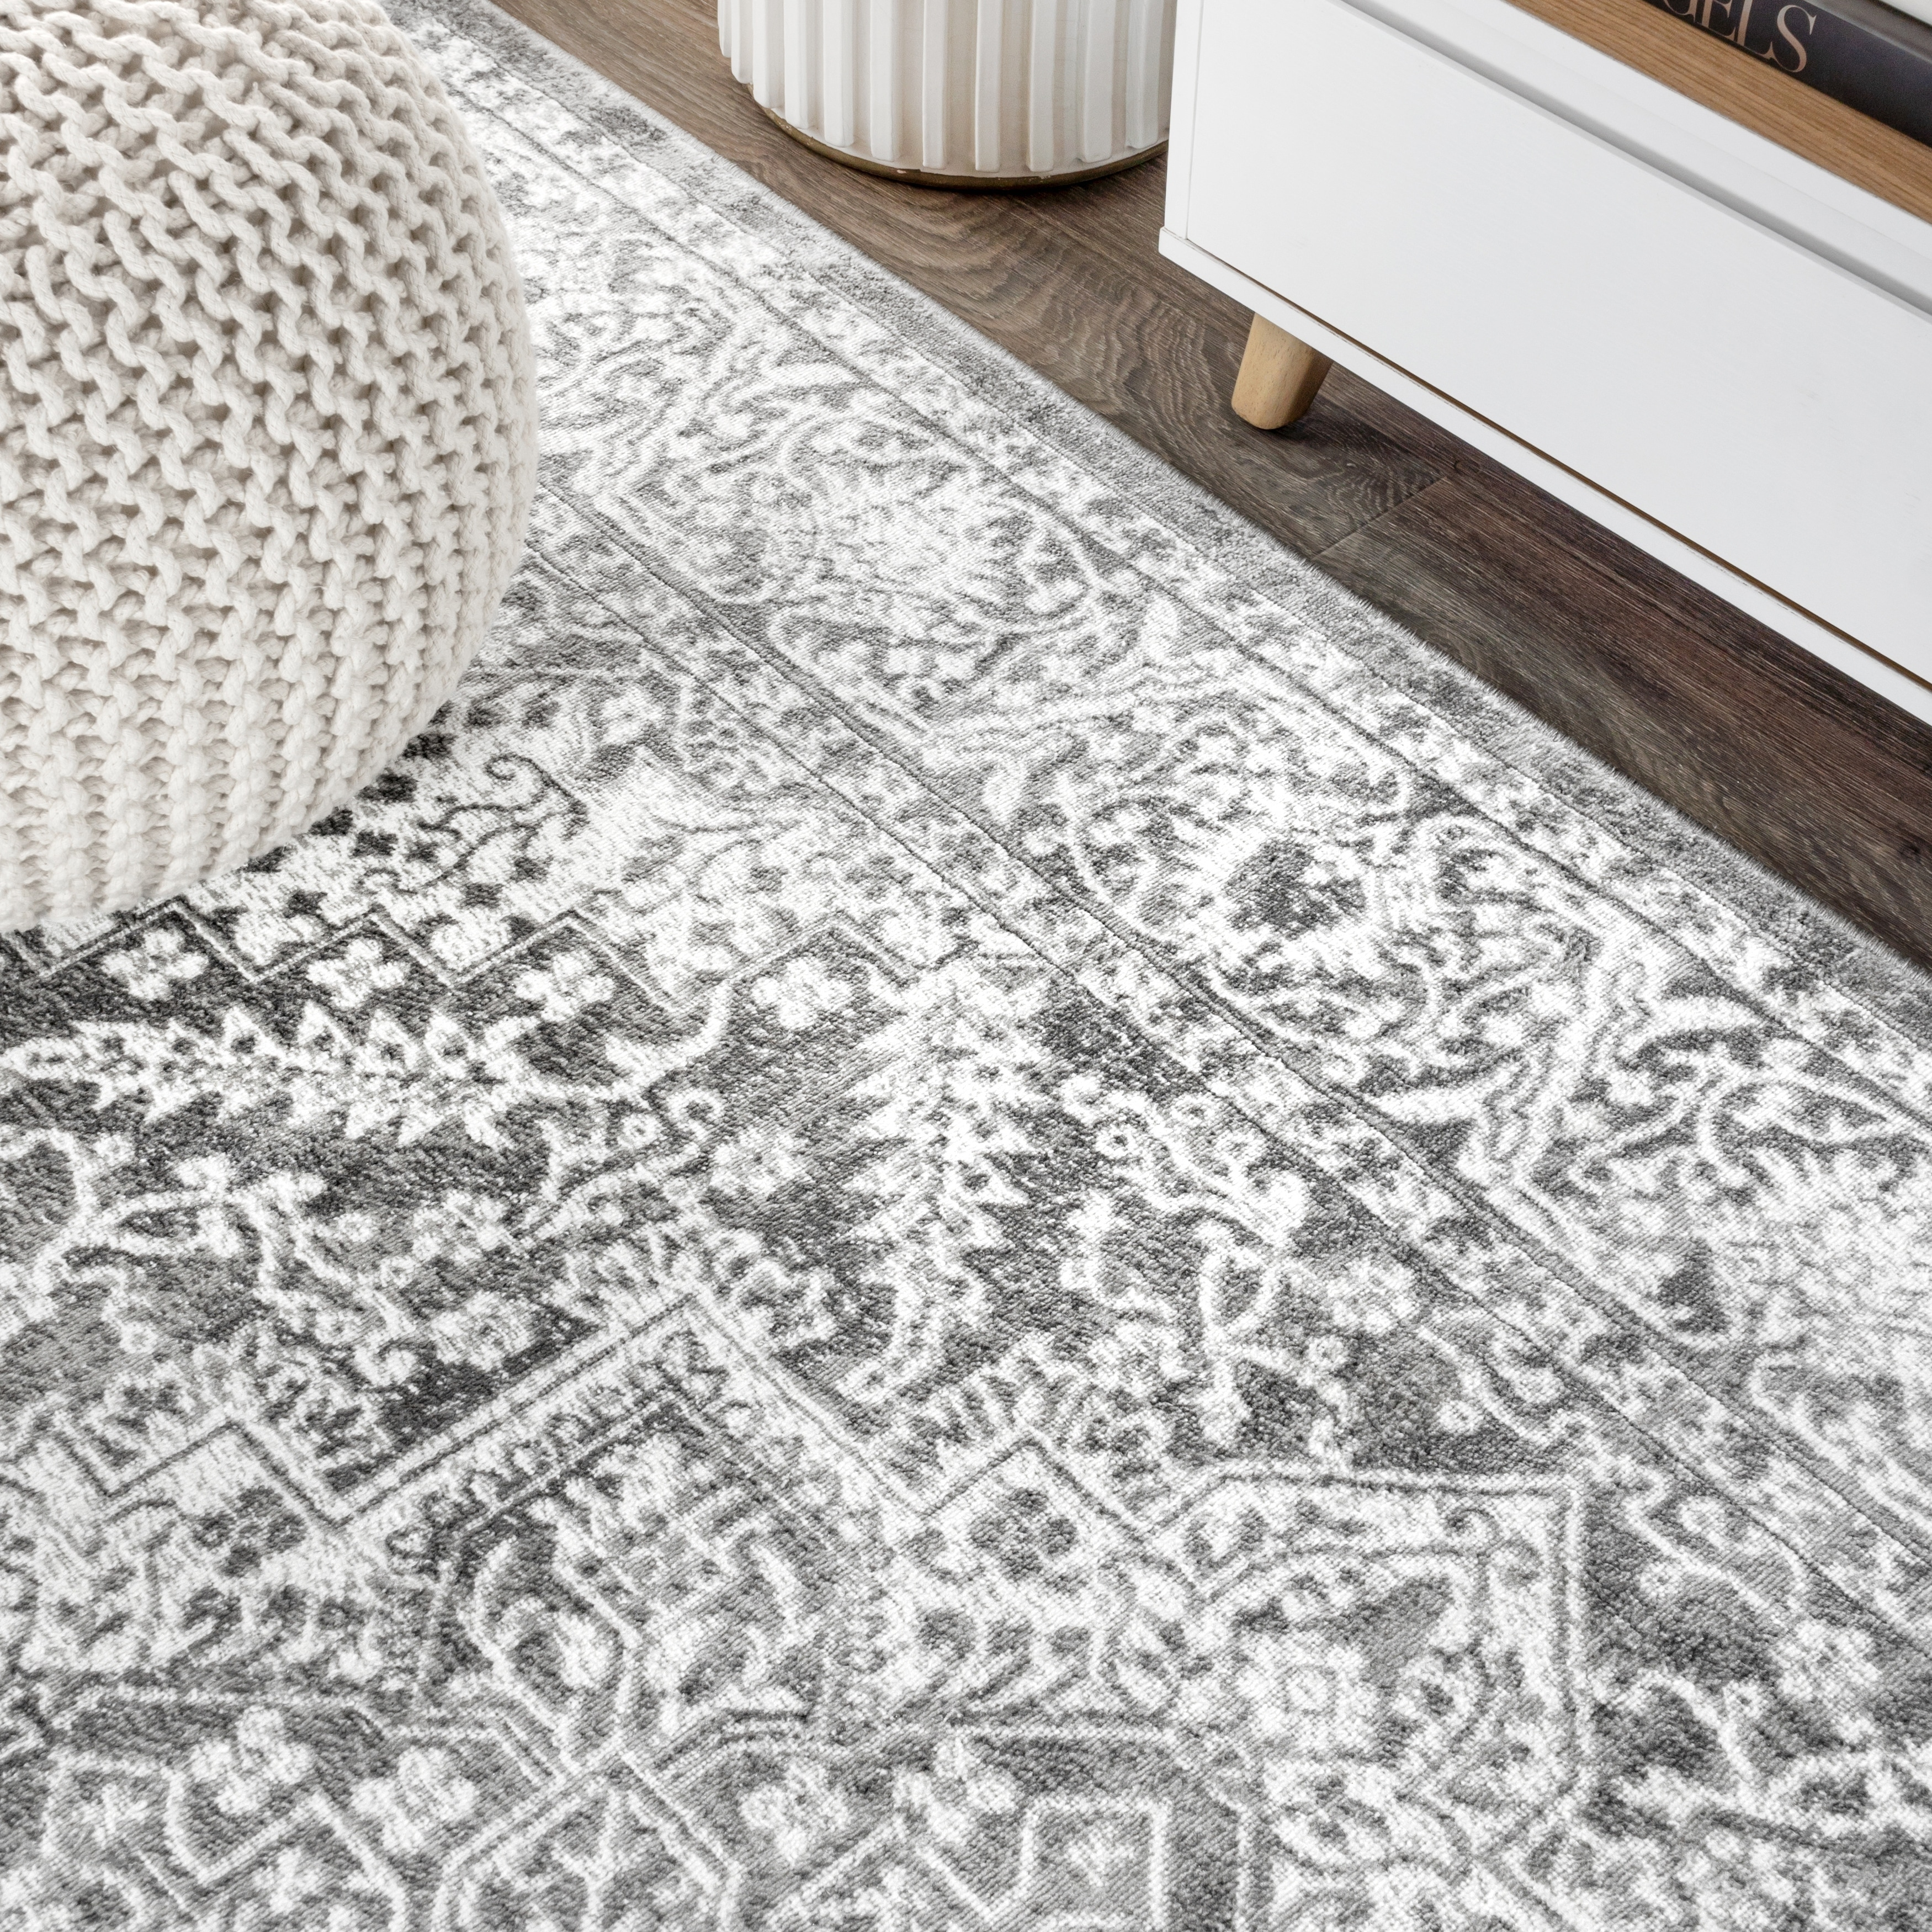 59f03745 Shop The Gray Barn Rhys Persian Vintage Medallion Light Grey Distressed  Area Rug - Free Shipping On Orders Over $45 - Overstock - 25896116